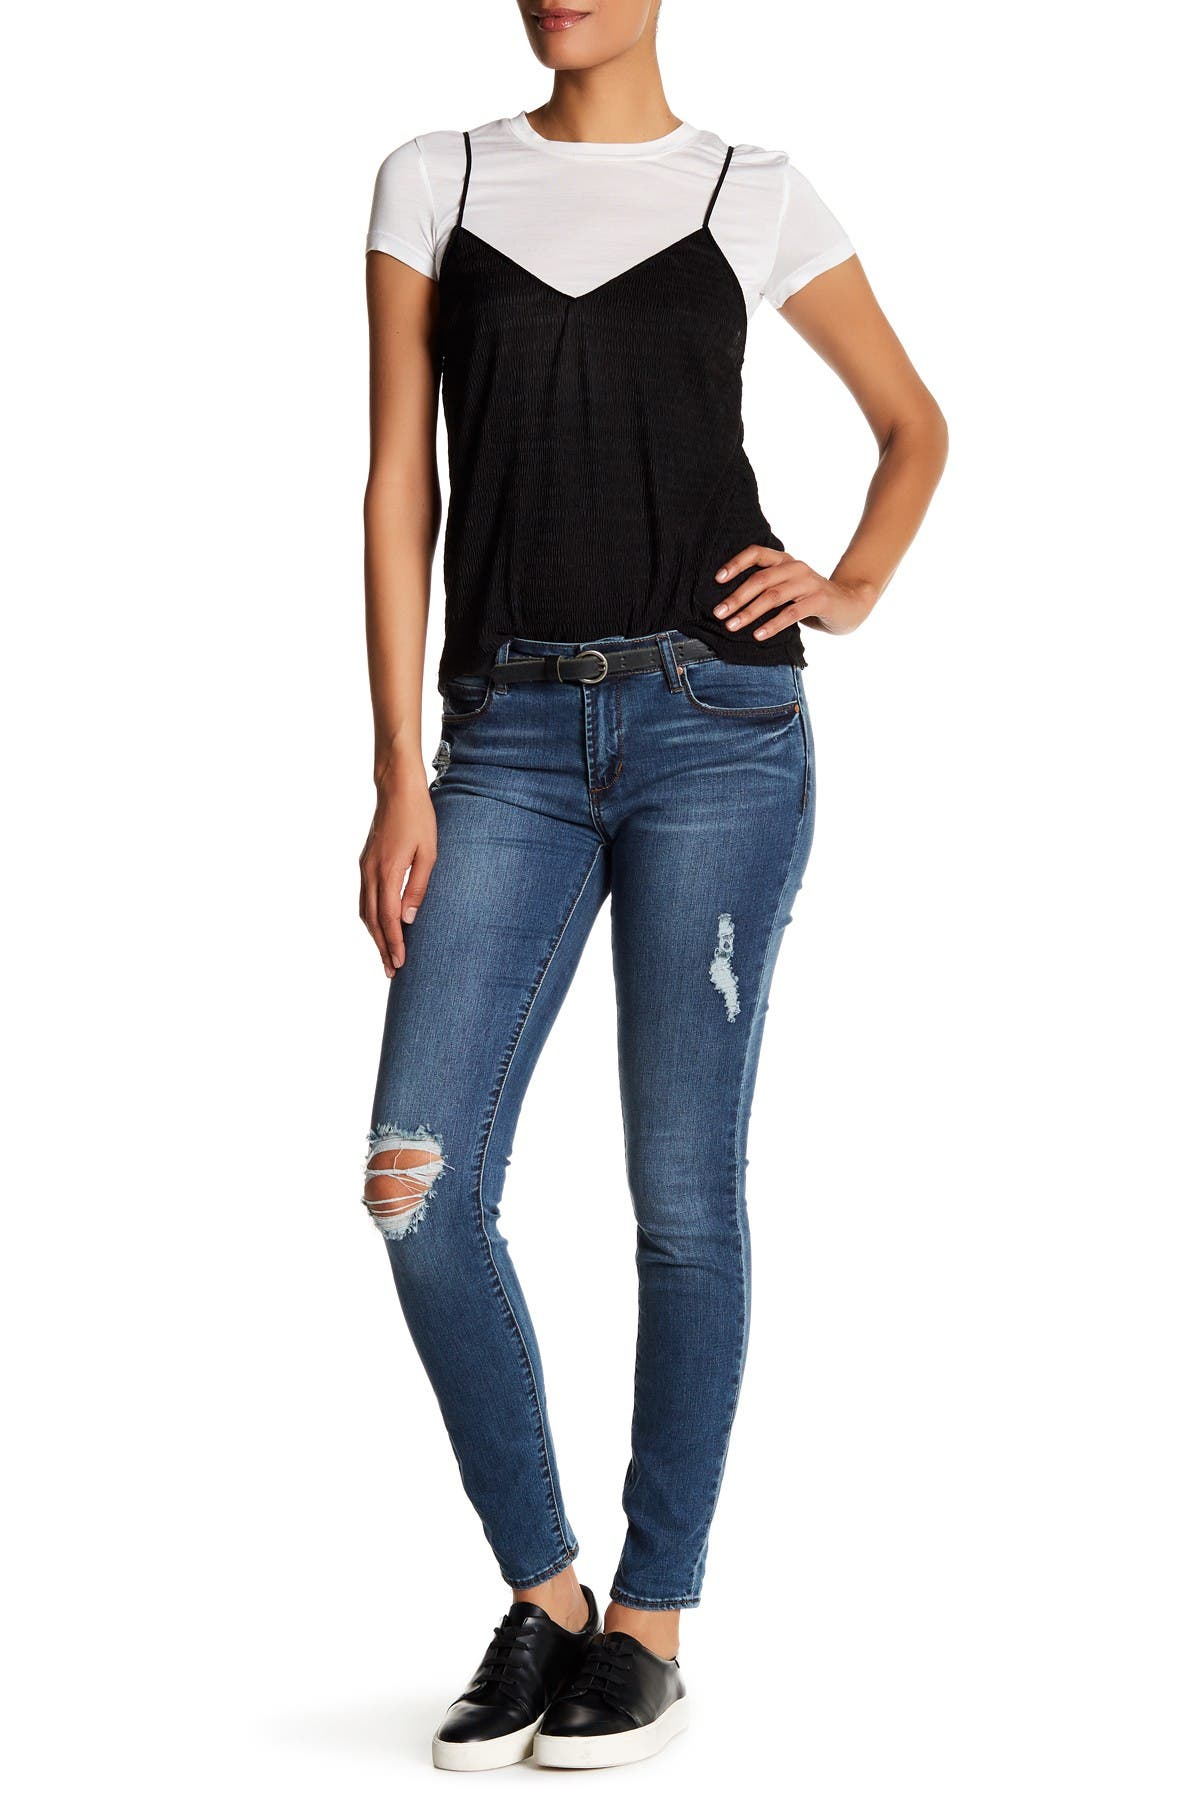 Image of Articles of Society Sarah Distressed Skinny Jean